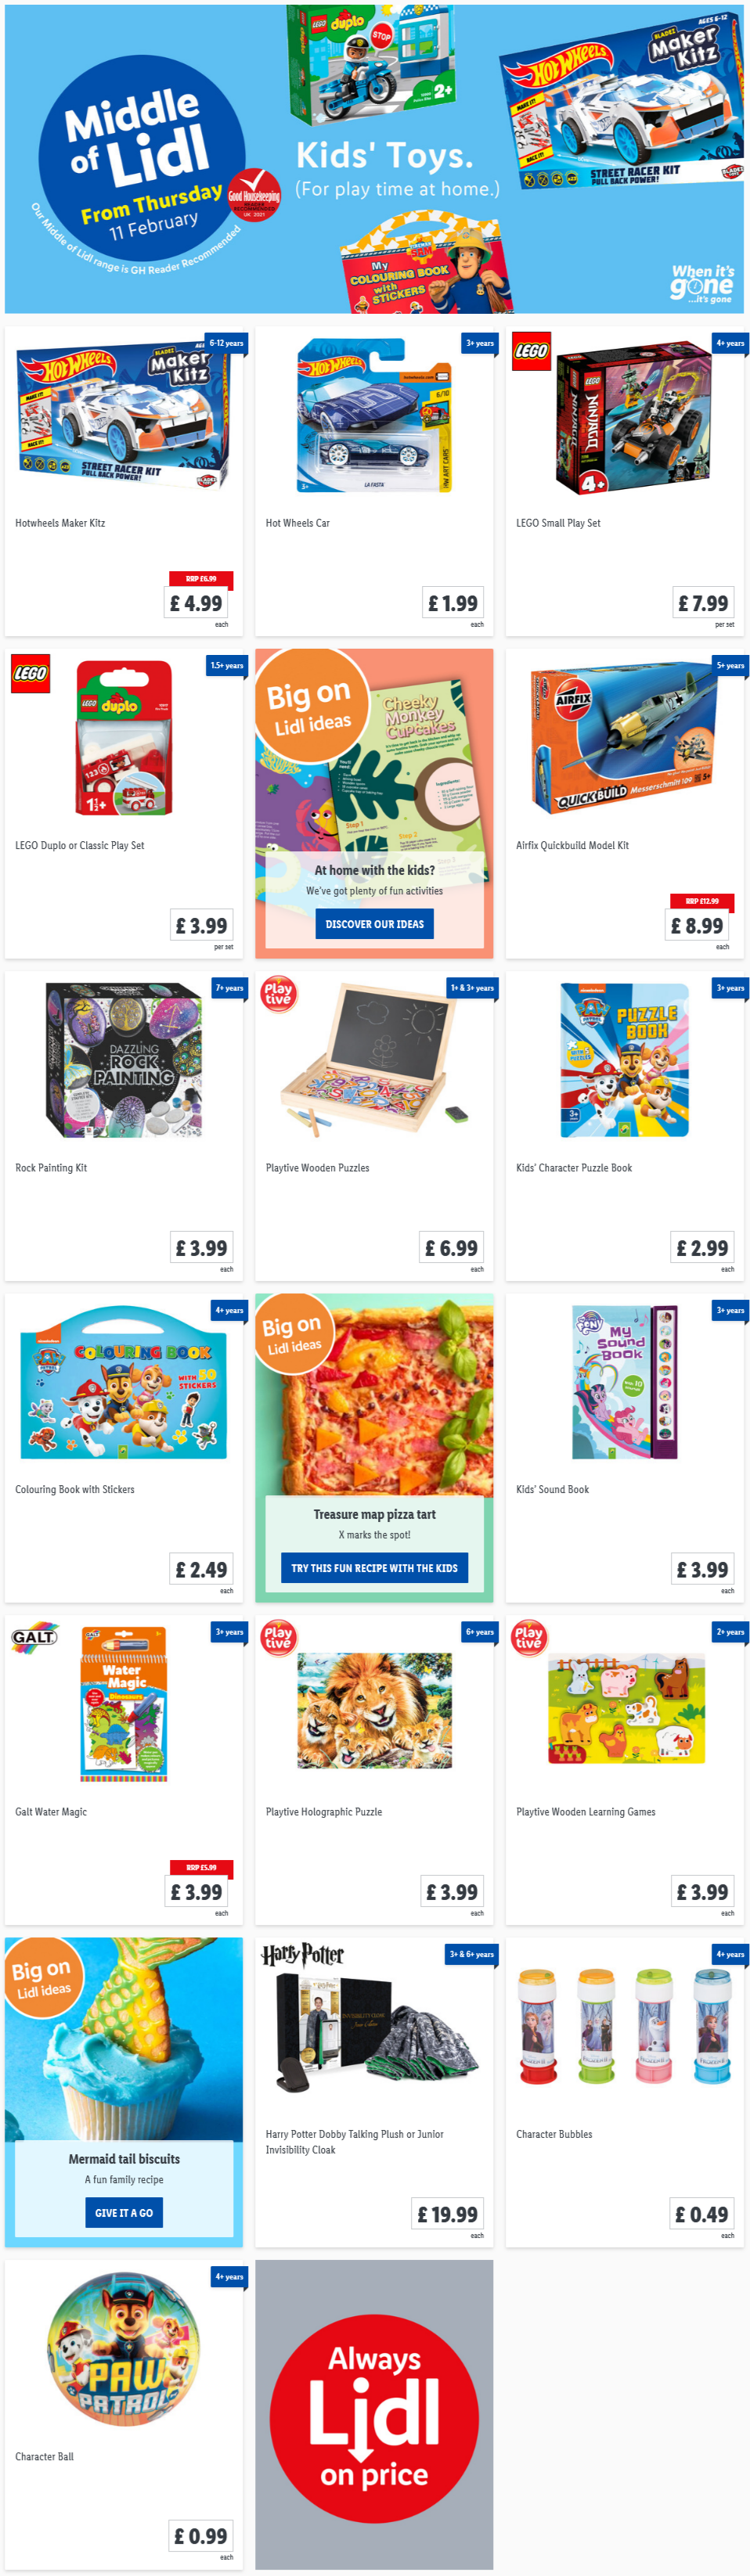 LIDL Kids Toys Offers From Thursday 11th February 2021